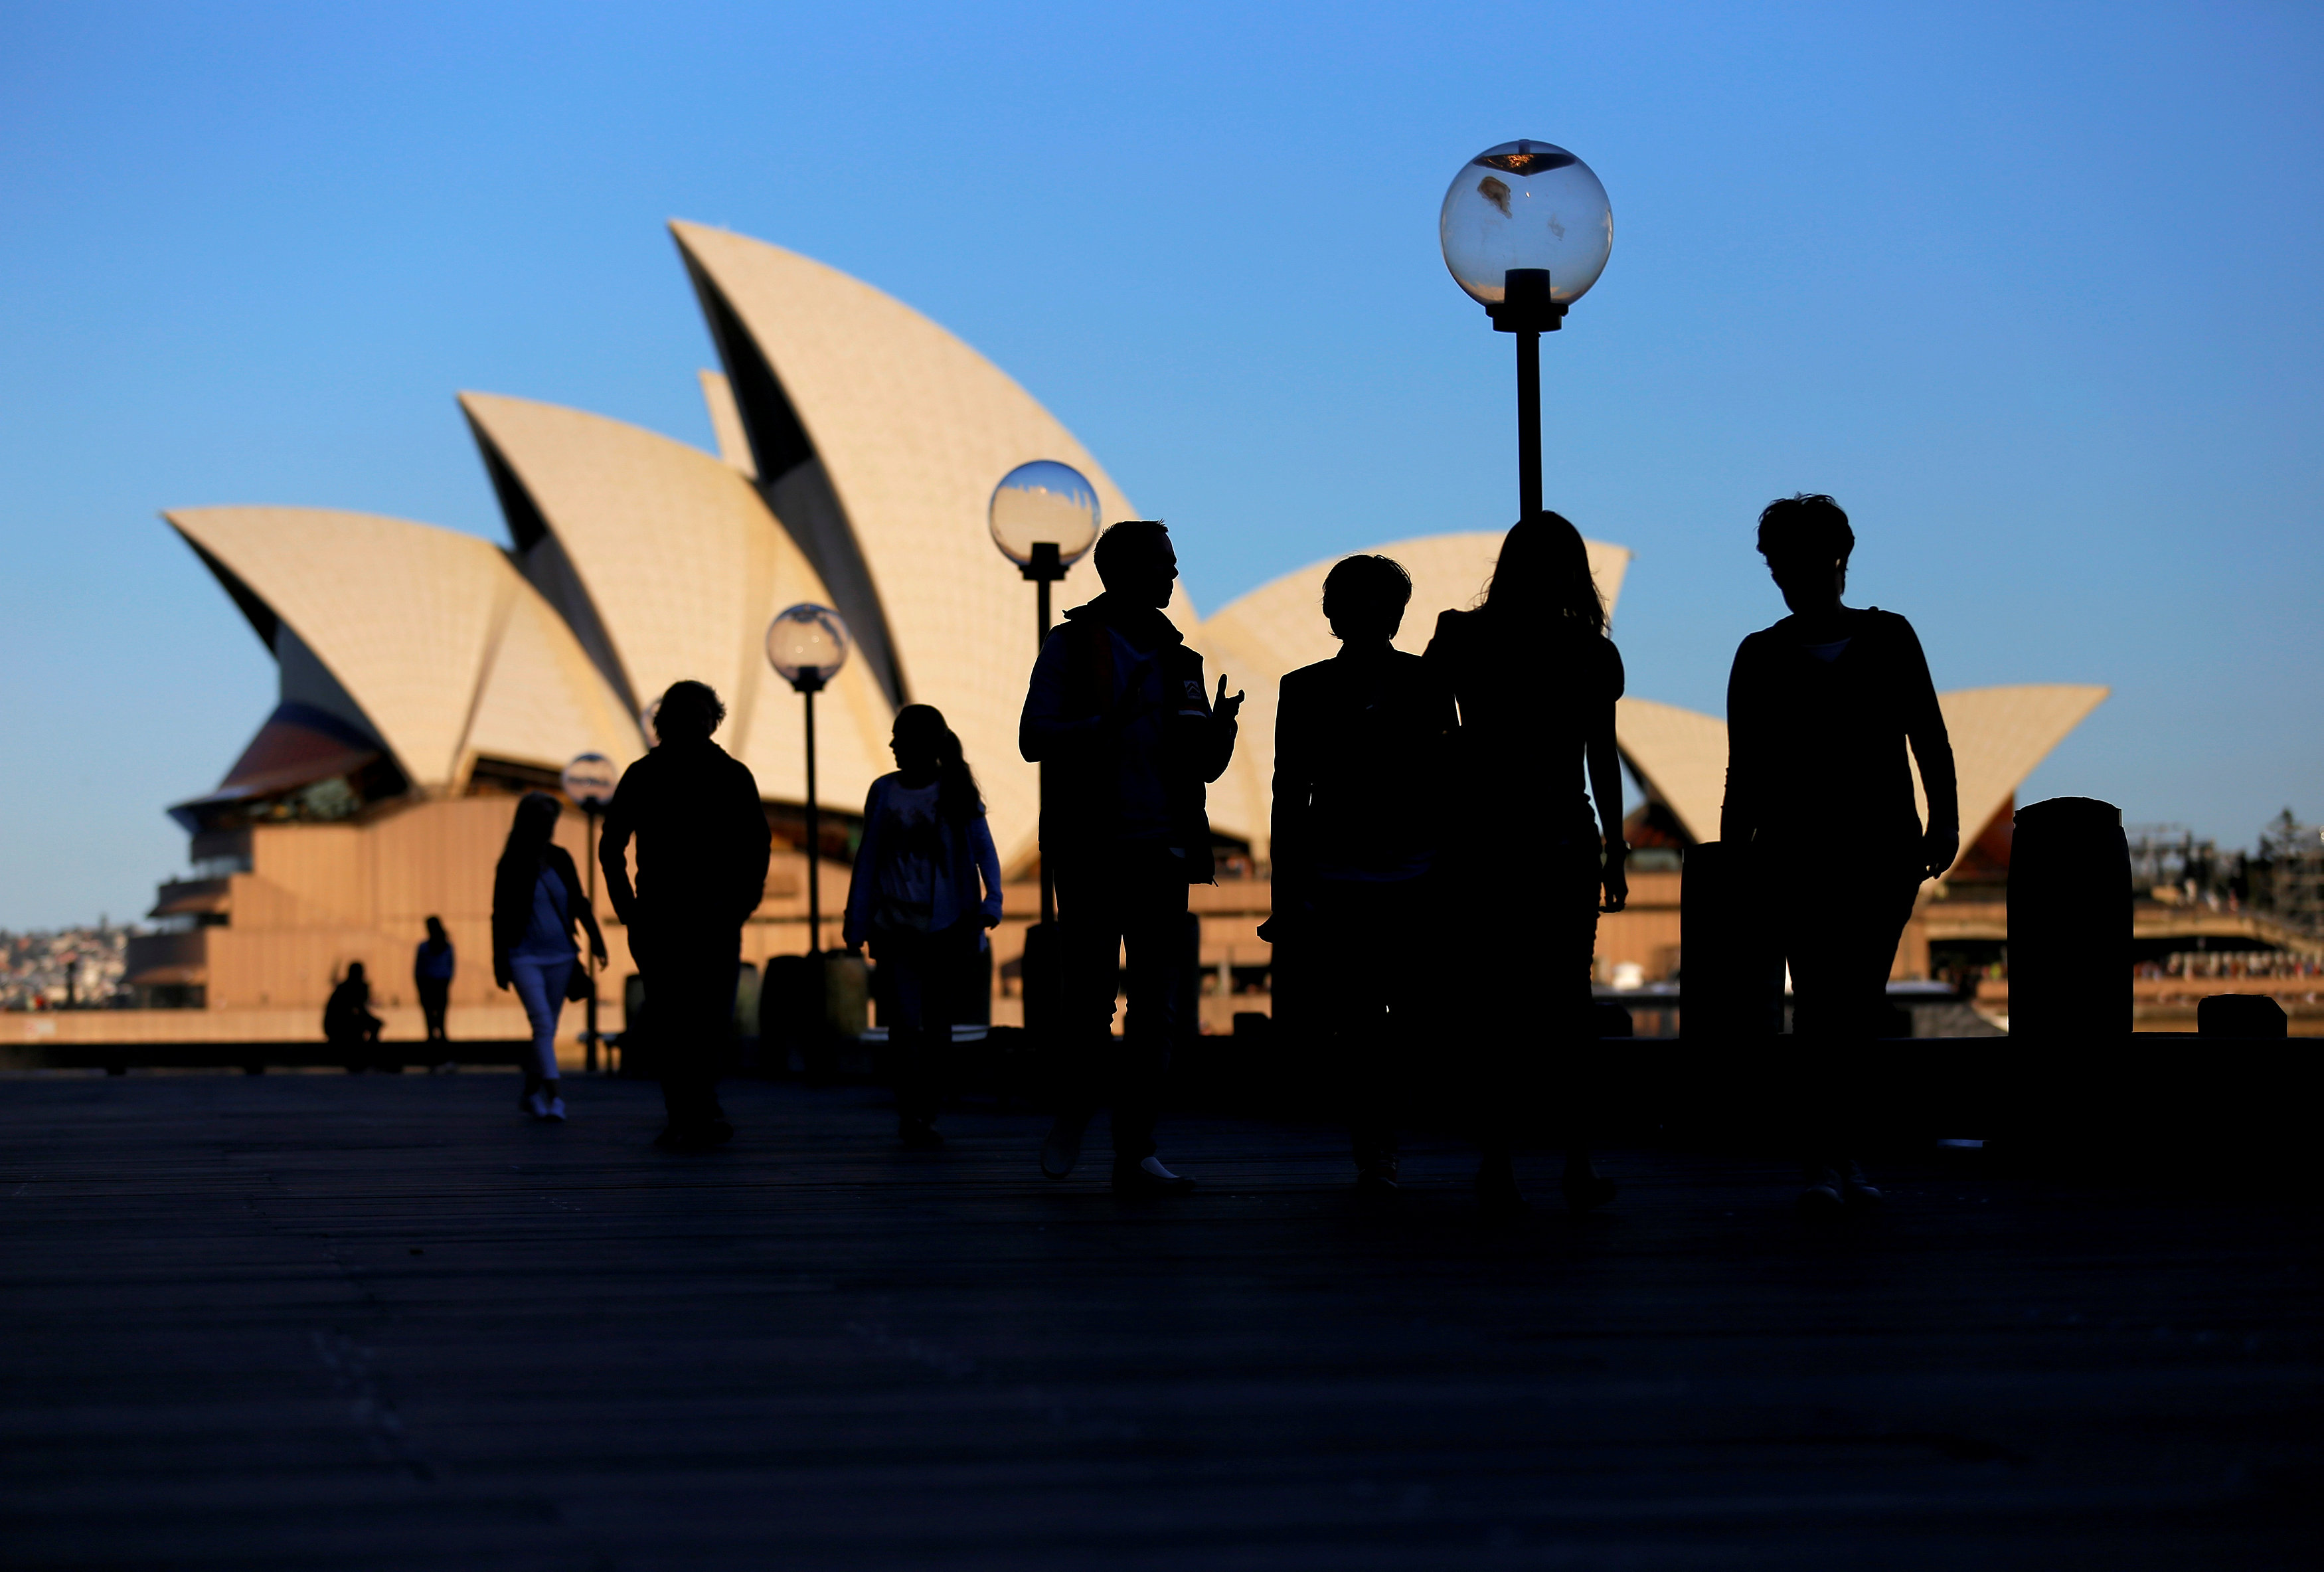 People walk in front of the Sydney Opera House, Australia on Nov. 2, 2016. (REUTERS/Steven Saphore)